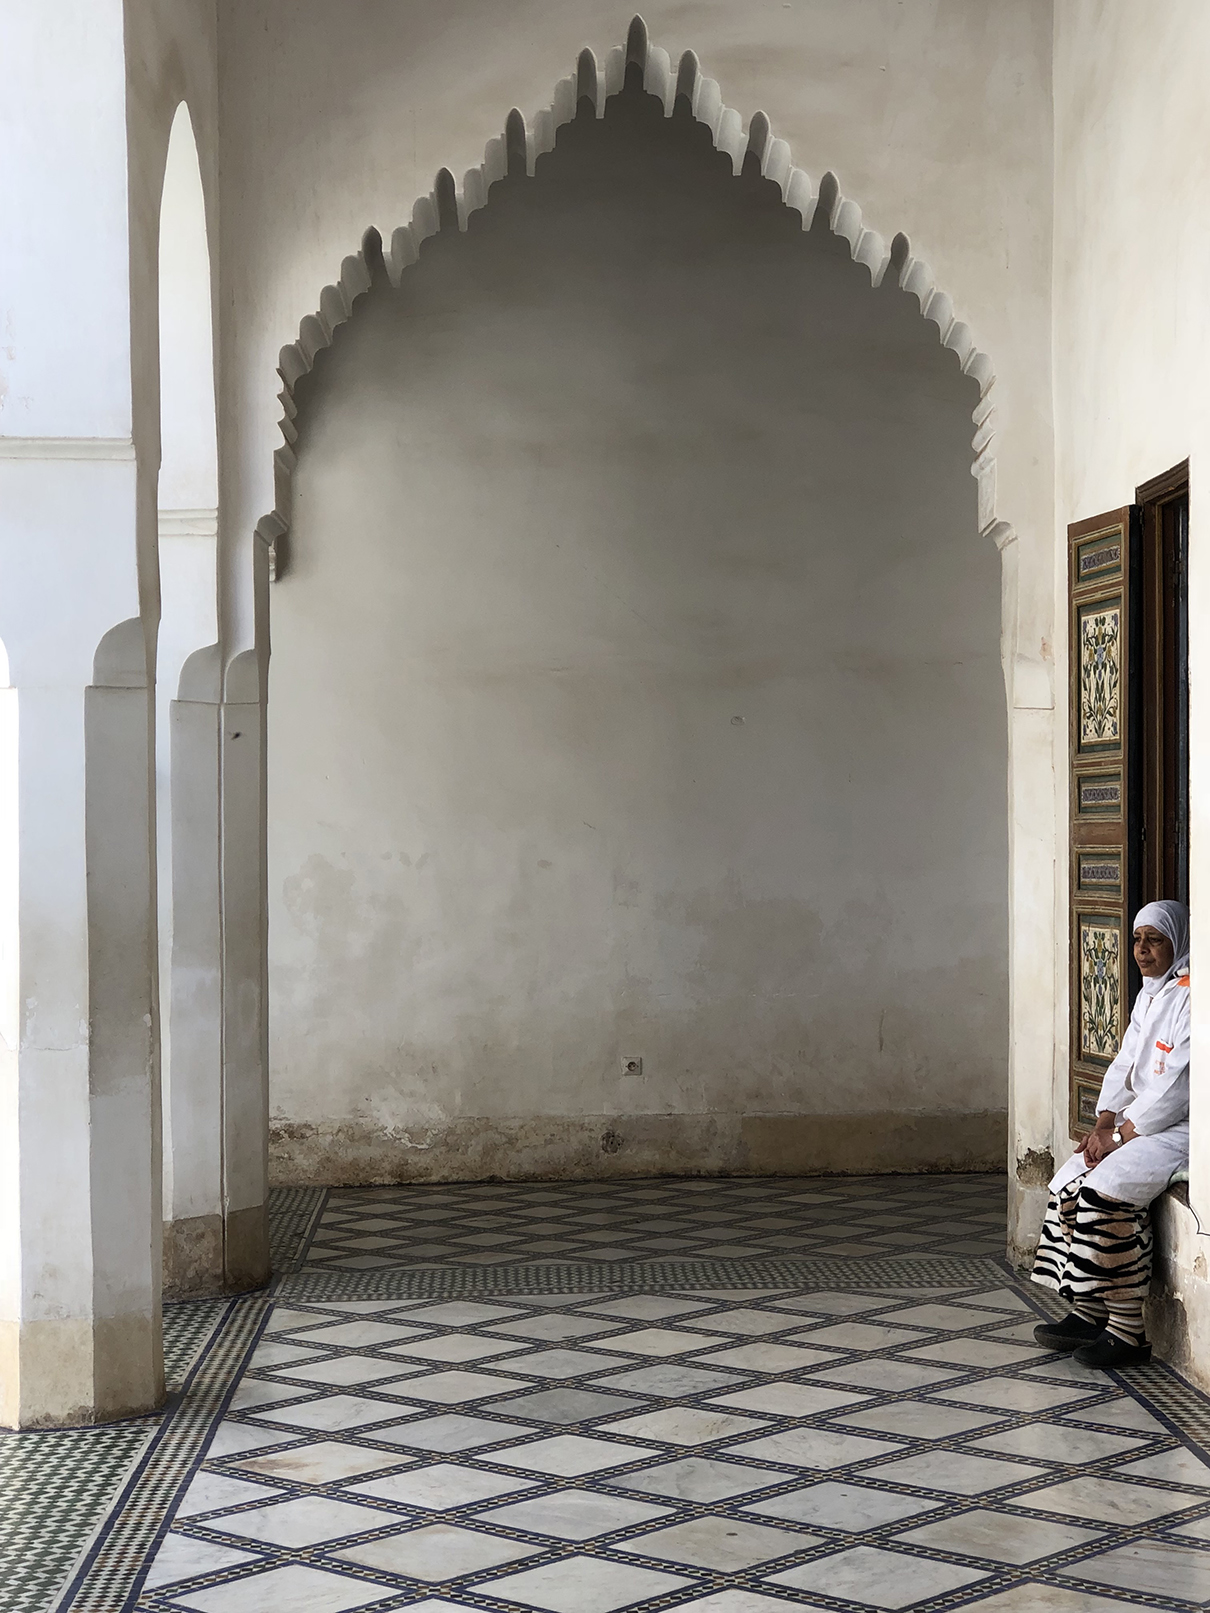 Bahia Palace Attendant, Marrakesh